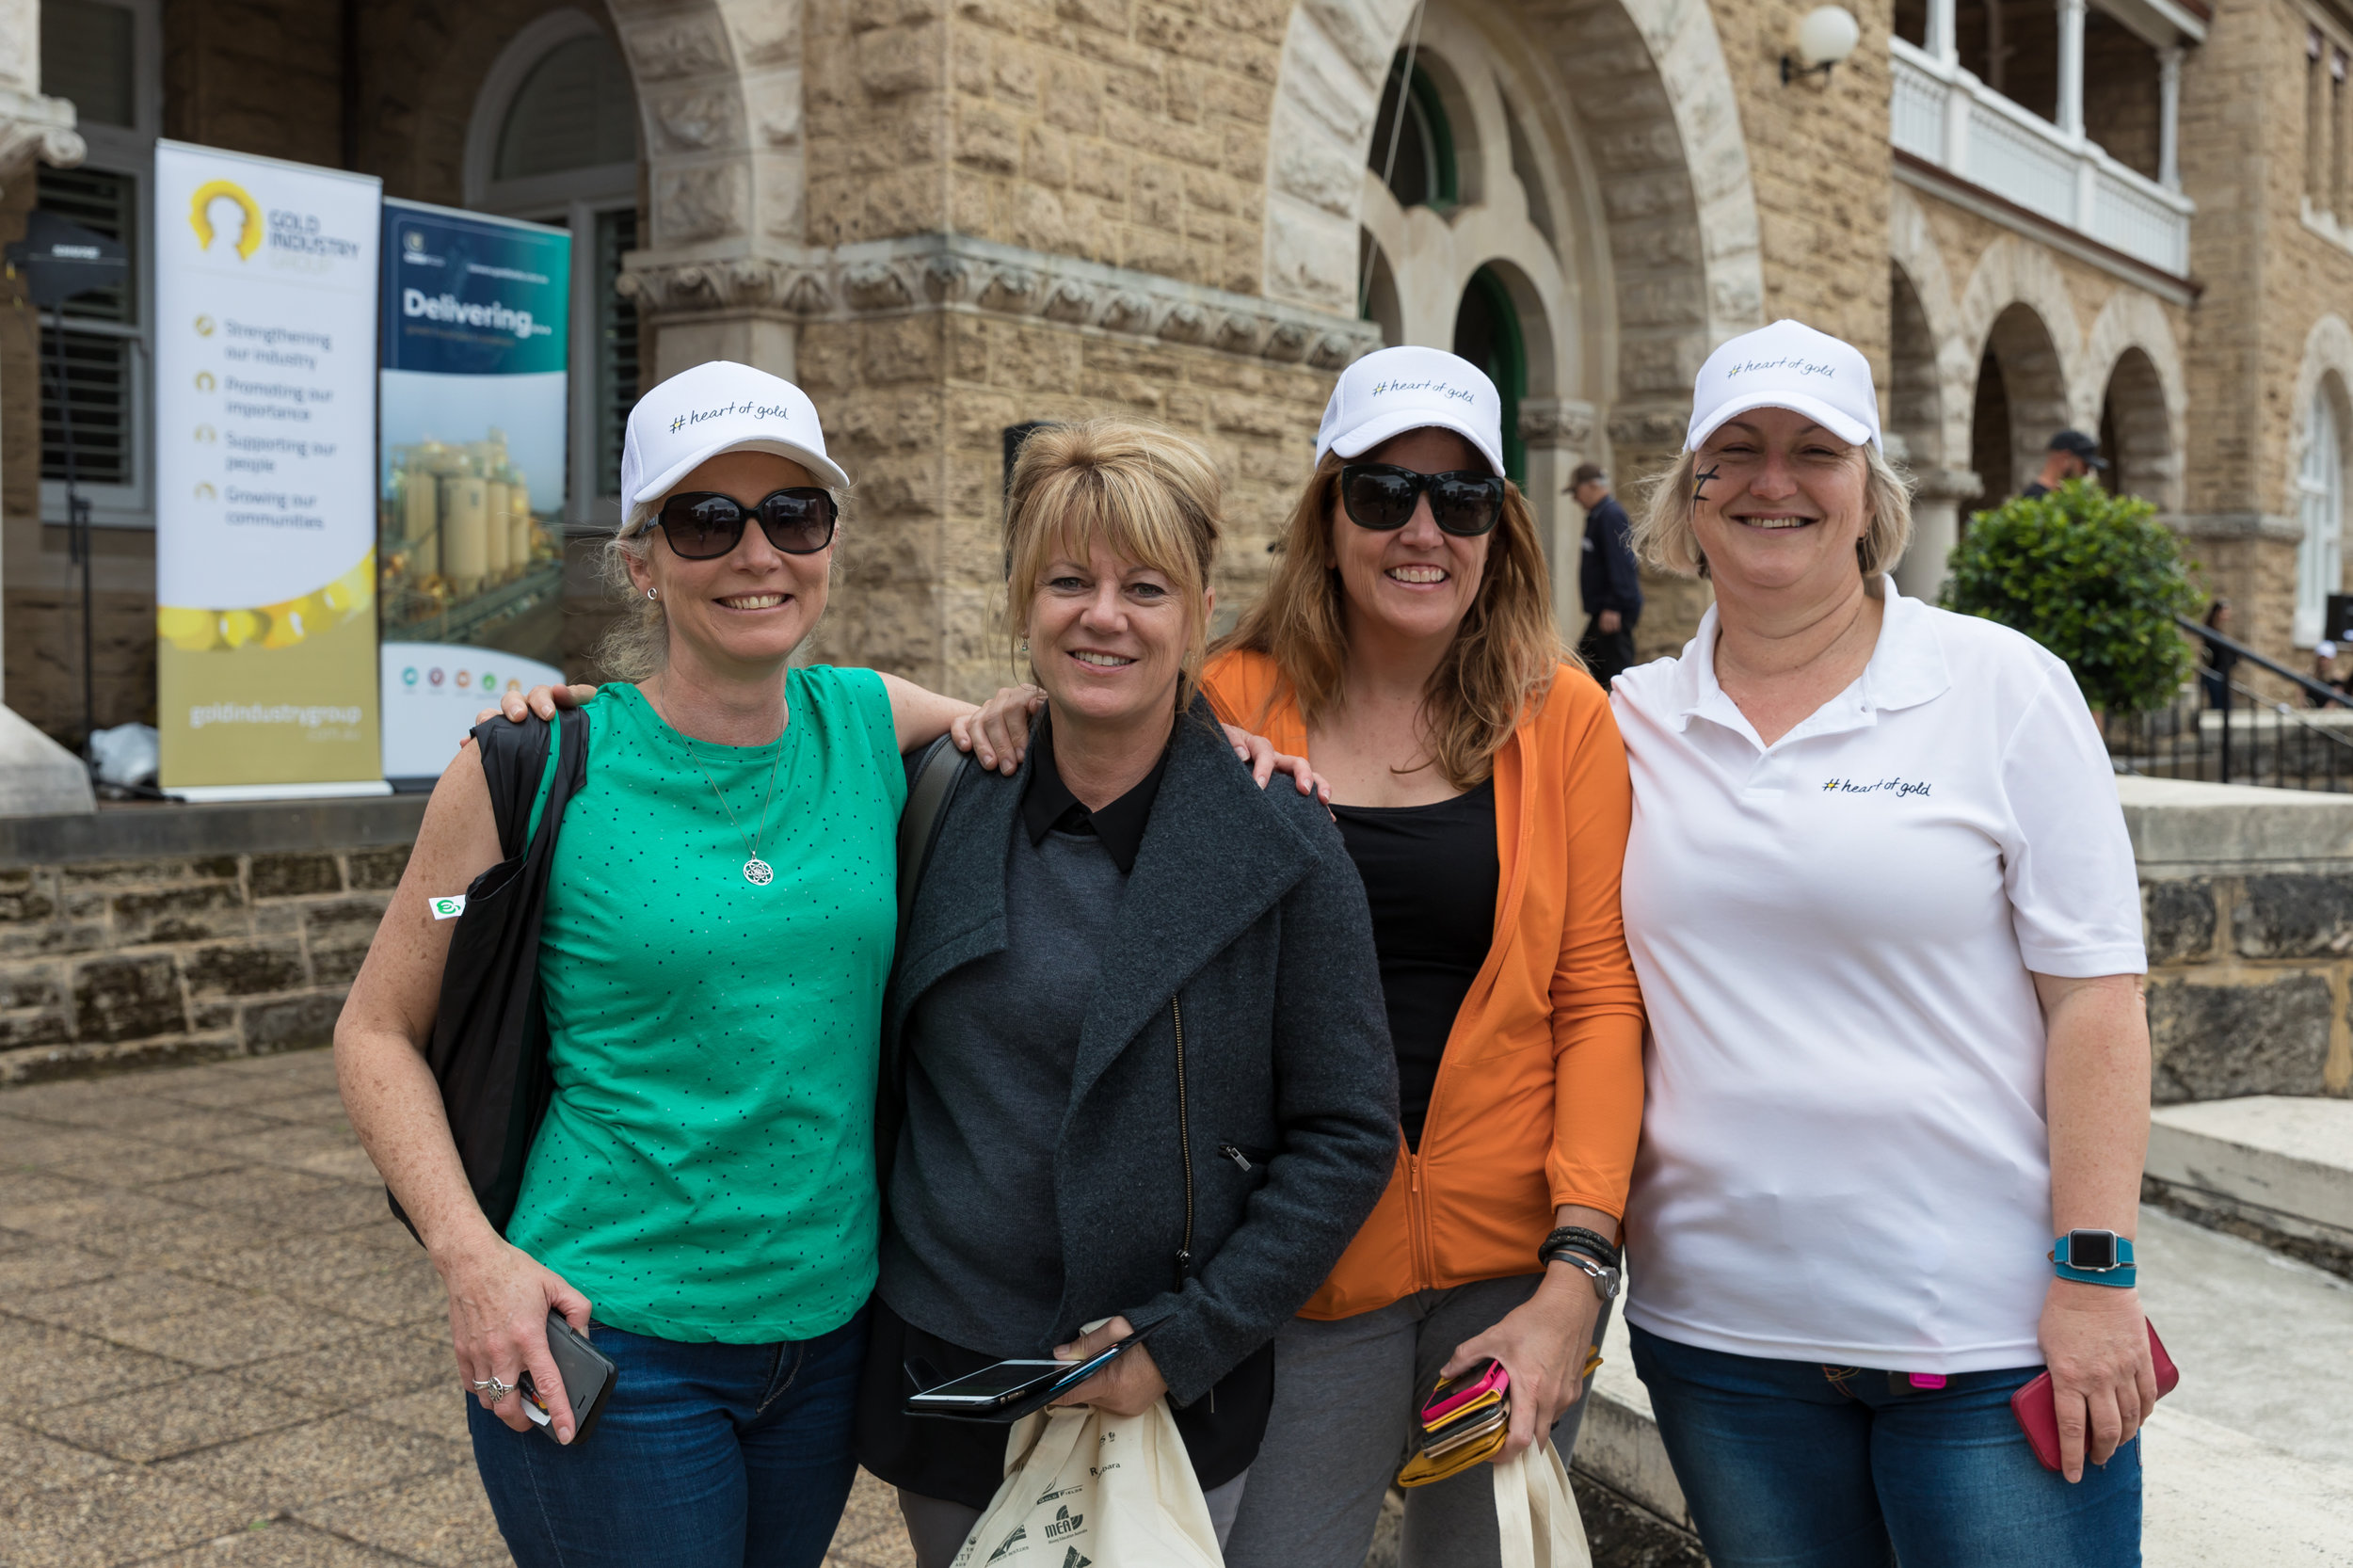 Evolution Mining Group Manager External and Indigenous Relations Anika McManus (on left) with Evolution Mining's Donna Kelly, Liesel Kemp and Saracen's Marianne Dravnieks at the GIG's 2018 #heartofgold Discovery Trail event in Perth.